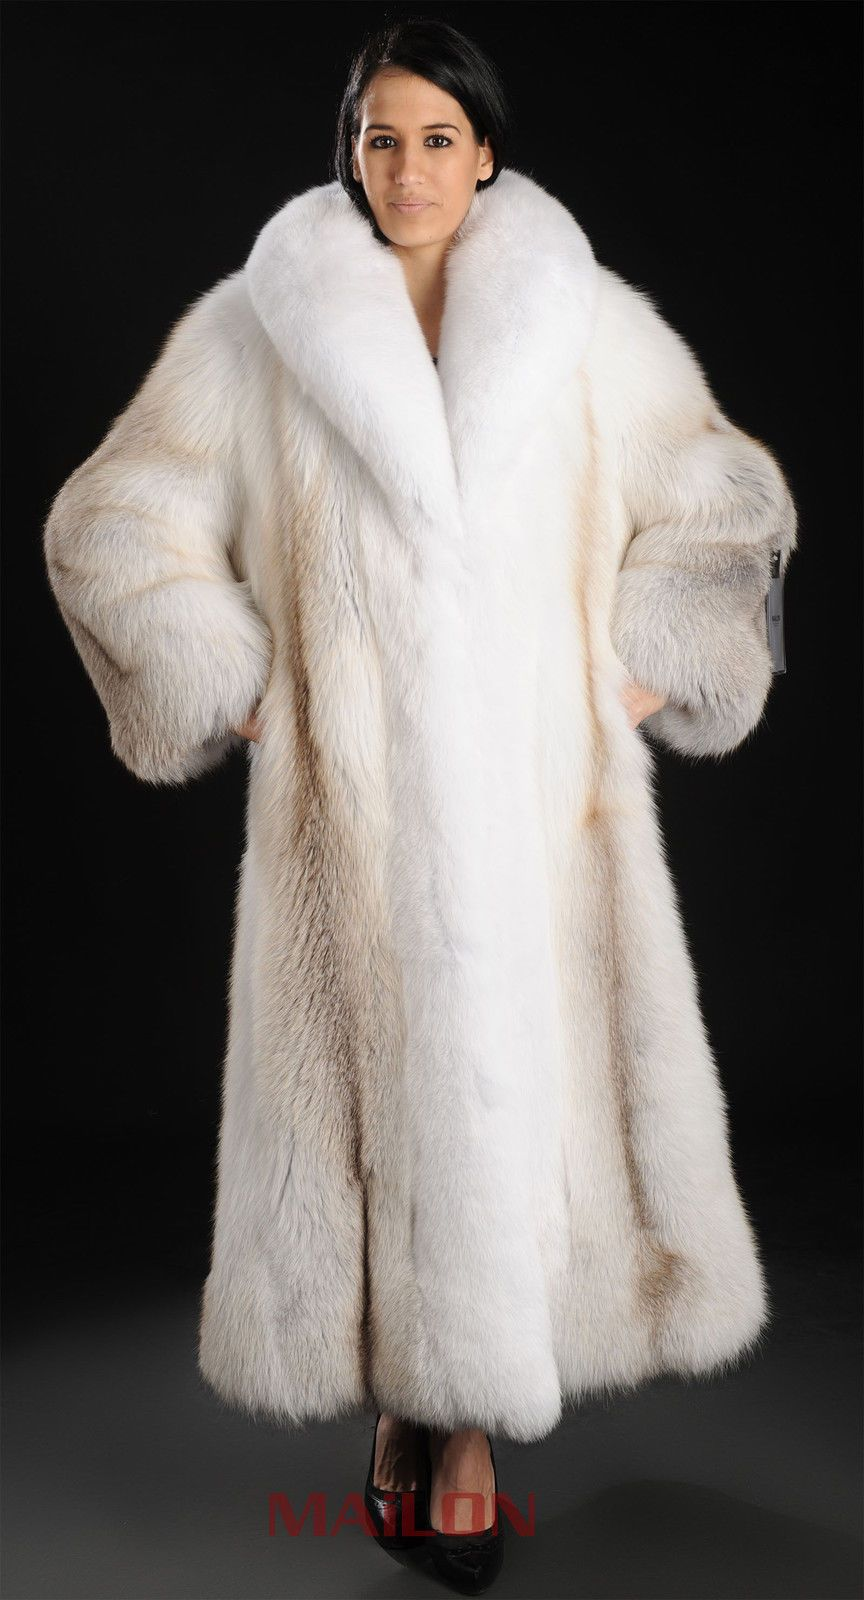 saga royal golden island shadow full length fox fur coat with white fox collar a furs. Black Bedroom Furniture Sets. Home Design Ideas